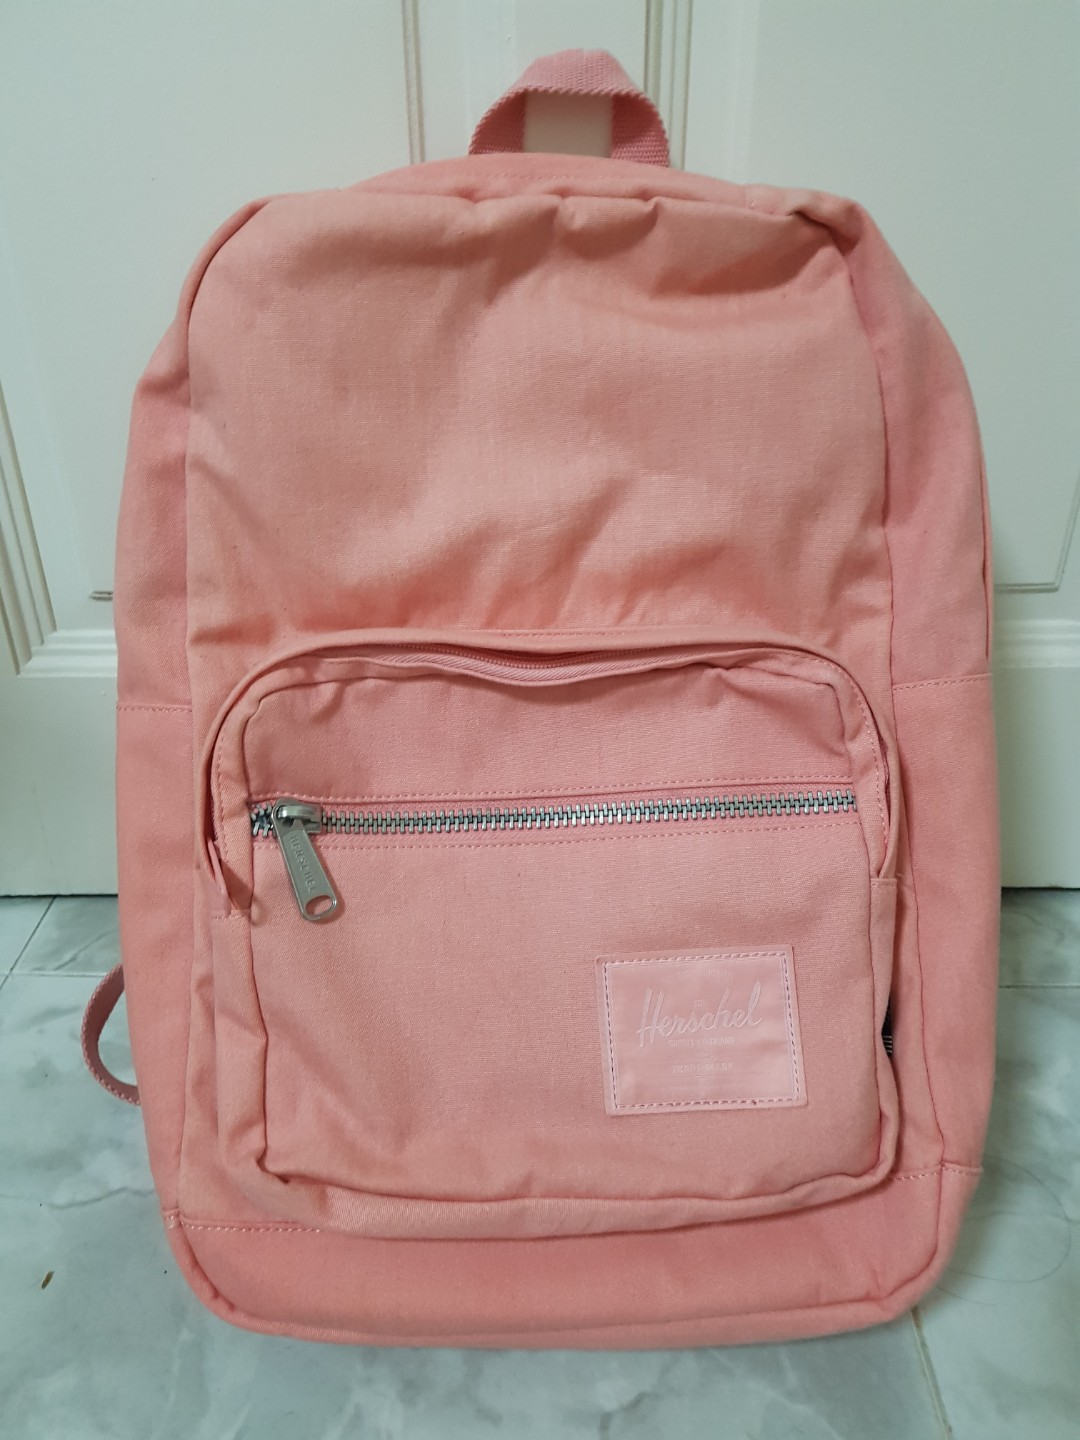 7e6a8732439 Herschel Pop Quiz Backpack in Strawberry Ice